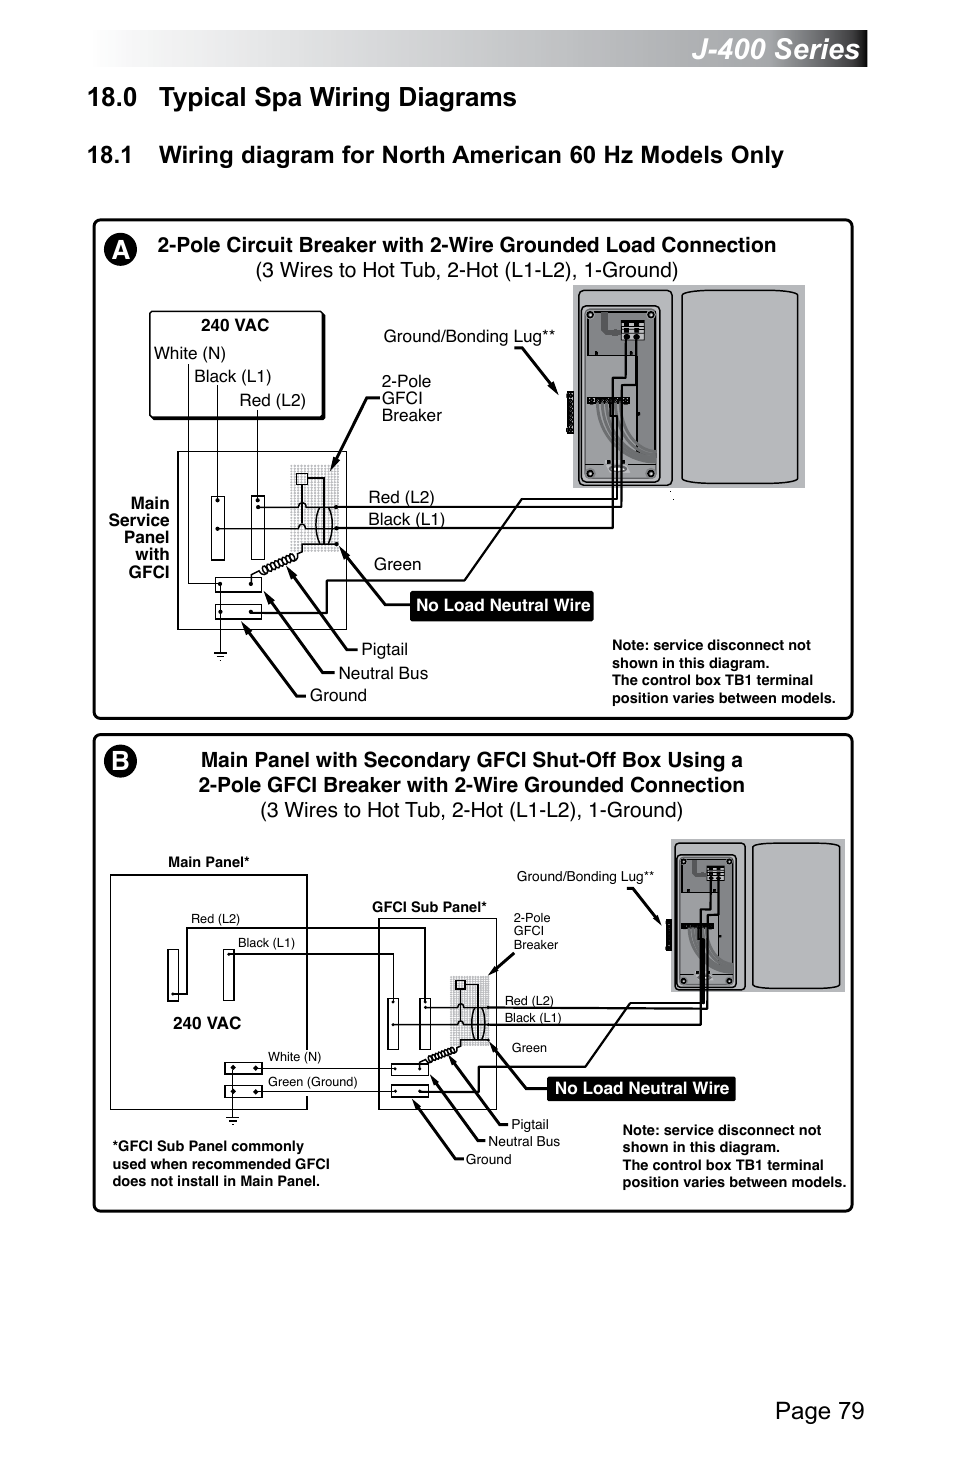 jacuzzi j 470 page85 0 typical spa wiring diagrams, j 400 series, page 79 jacuzzi j 3 wire spa wiring diagram at pacquiaovsvargaslive.co